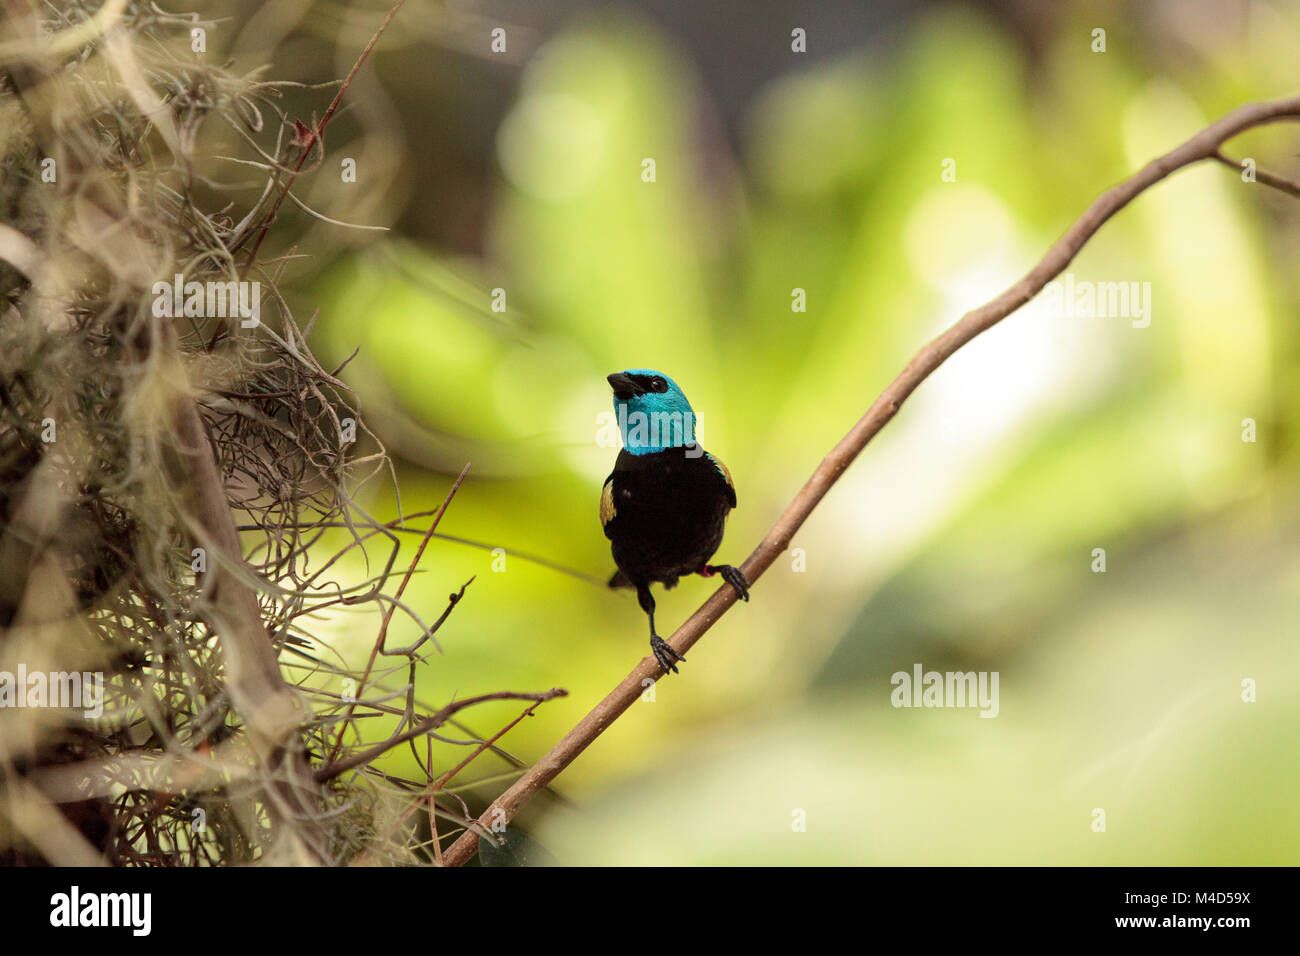 Blue necked tanager scientifically known as Tangara cyanicoilis - Stock Image